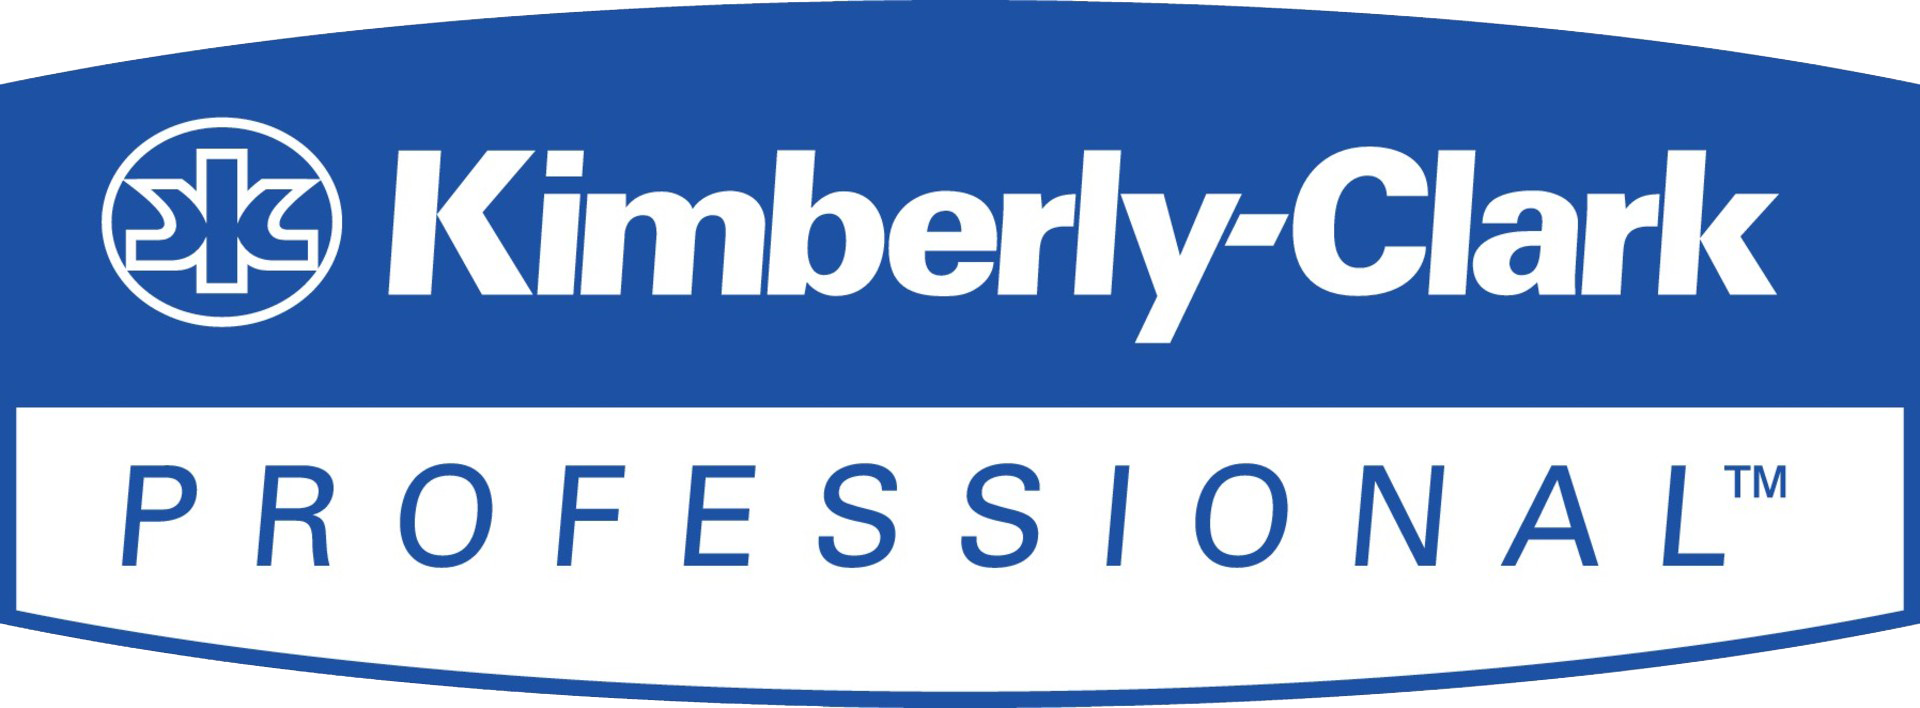 Kimberly-Clark Professional™